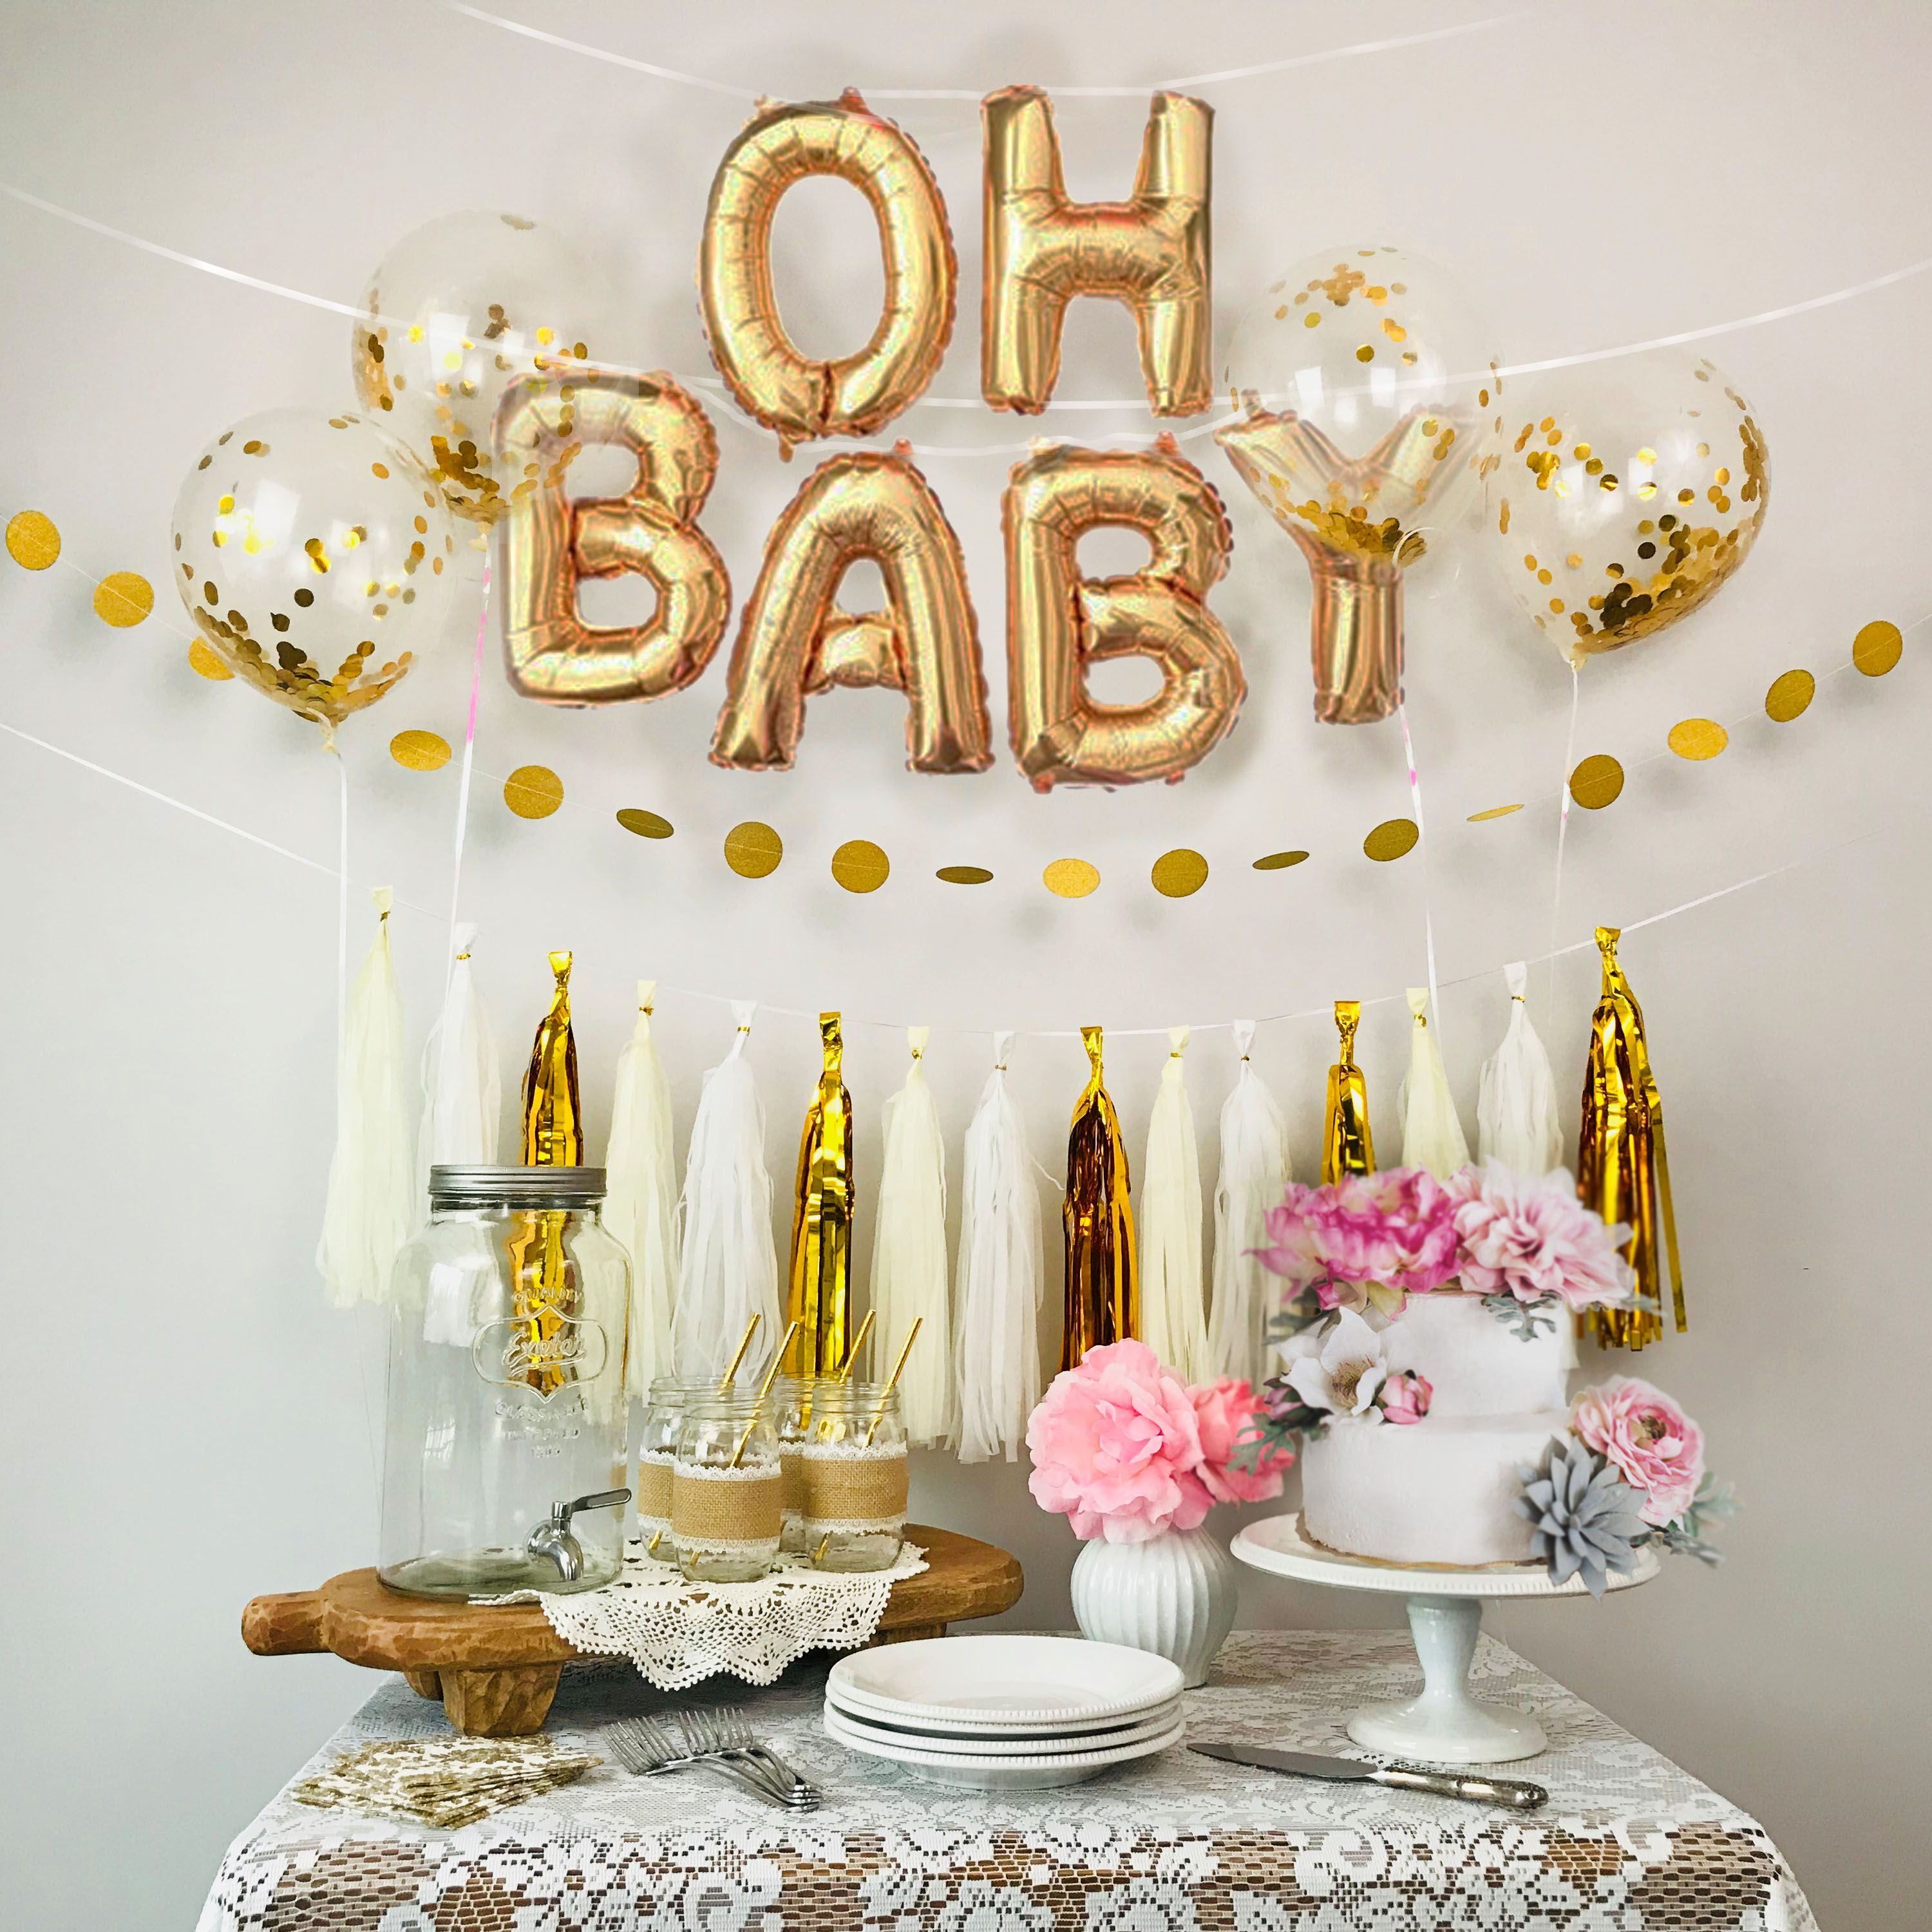 Baby Shower Decorations Gold White Oh Baby Foil Balloons Confetti Balloons Dot Garla Baby Reveal Party Decorations Confetti Balloons Balloon Tassel Garland